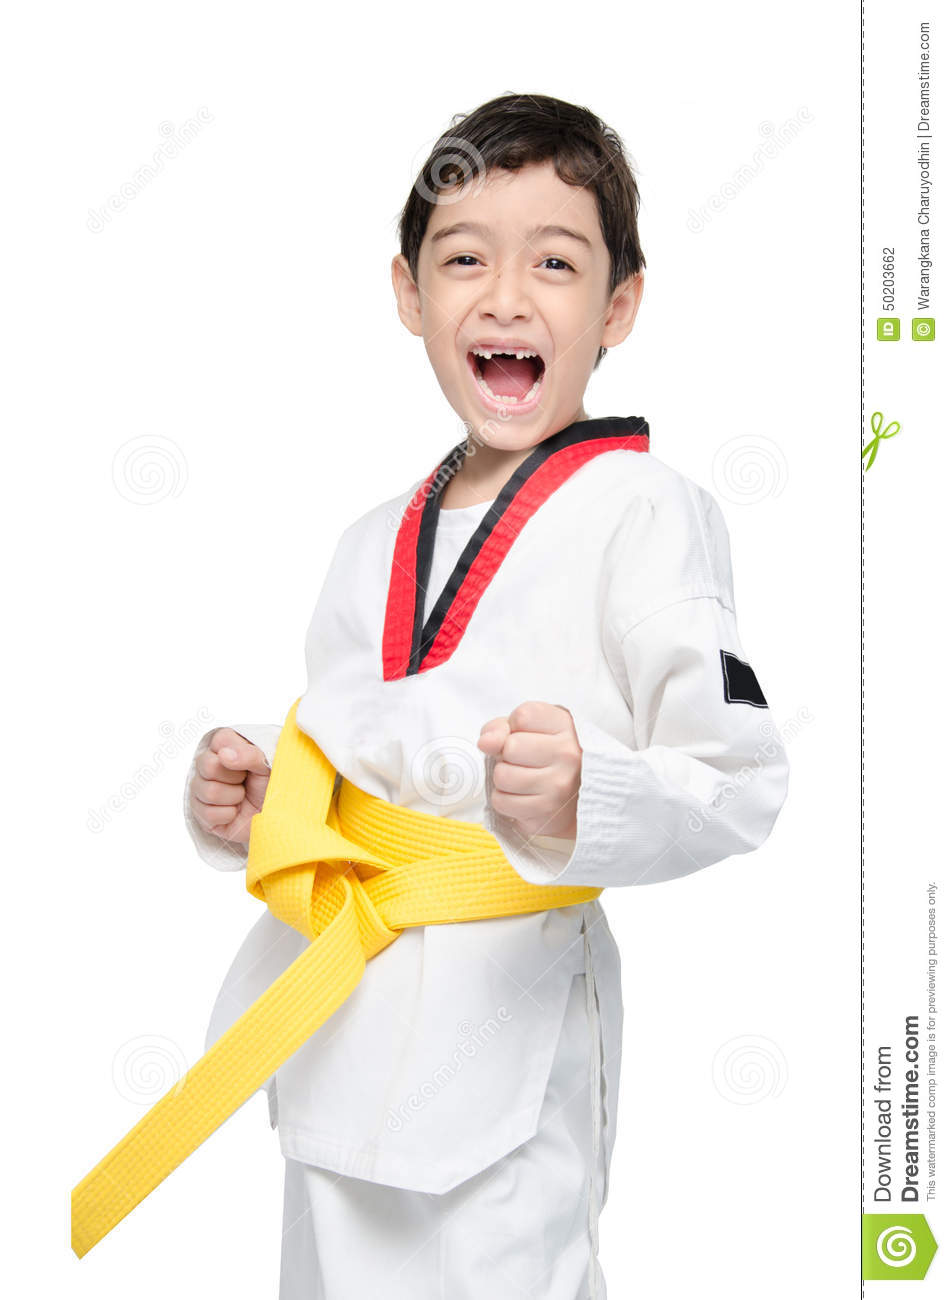 Tae kwon do business plans